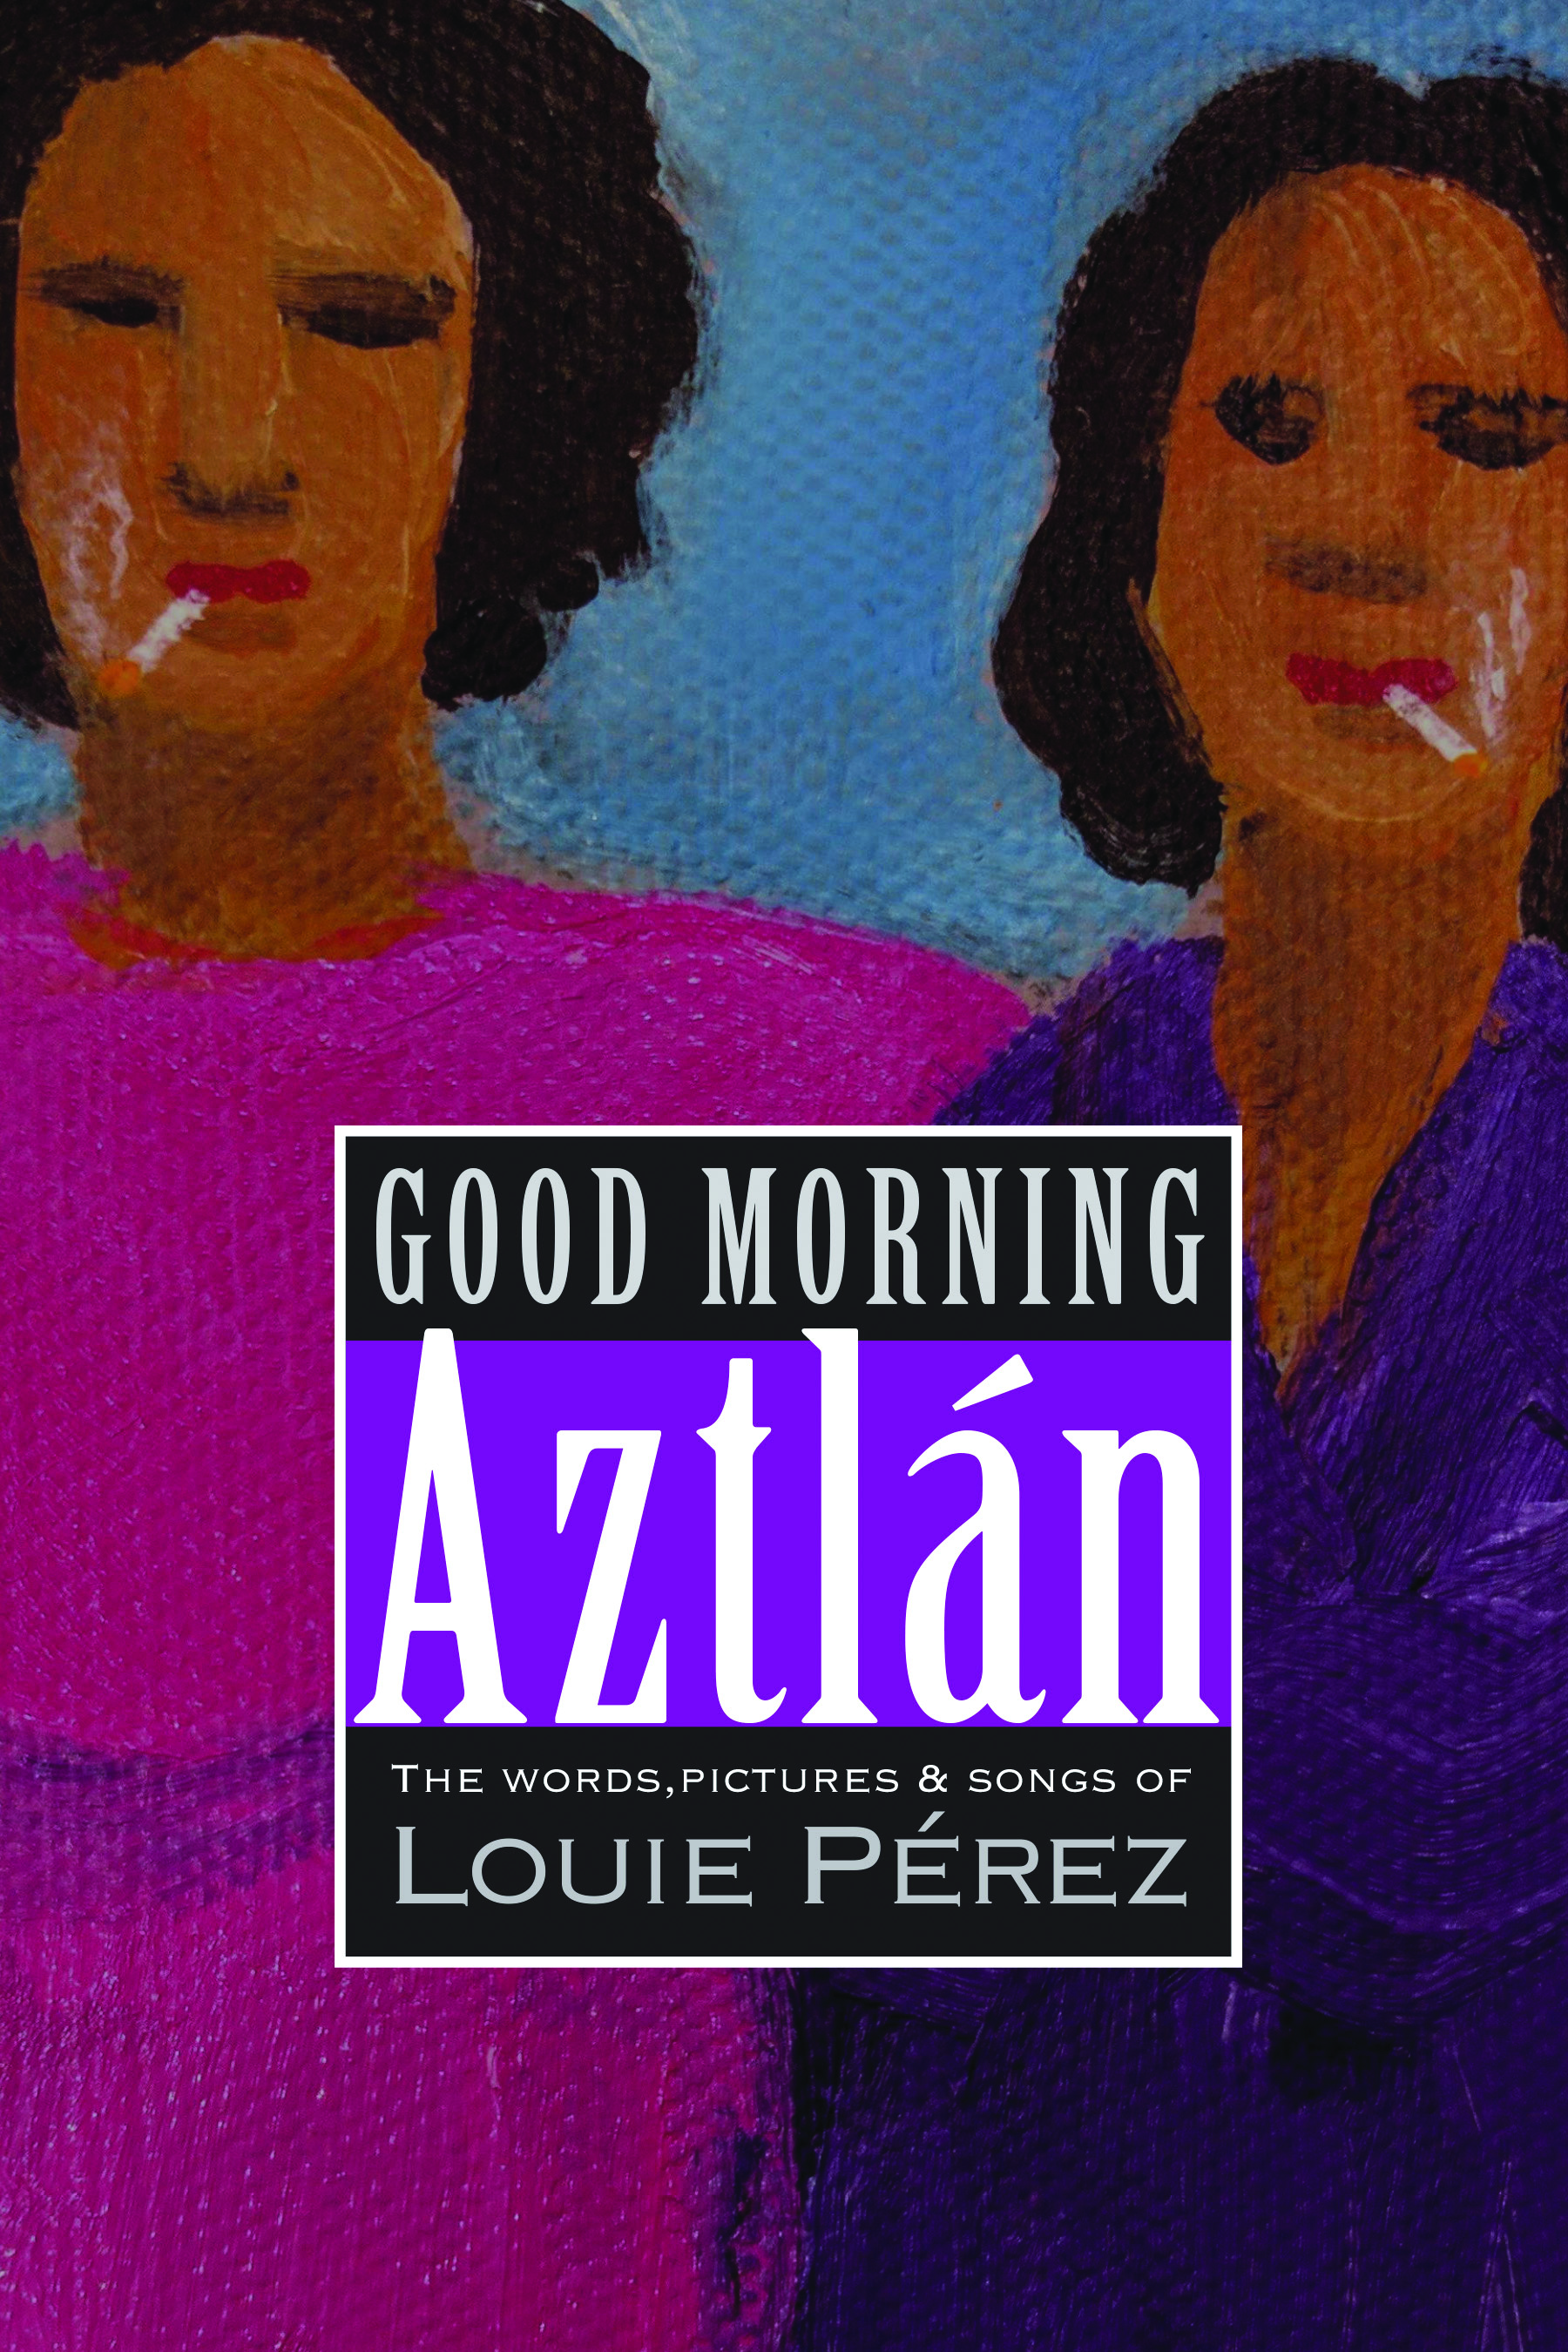 Good Morning Aztlan